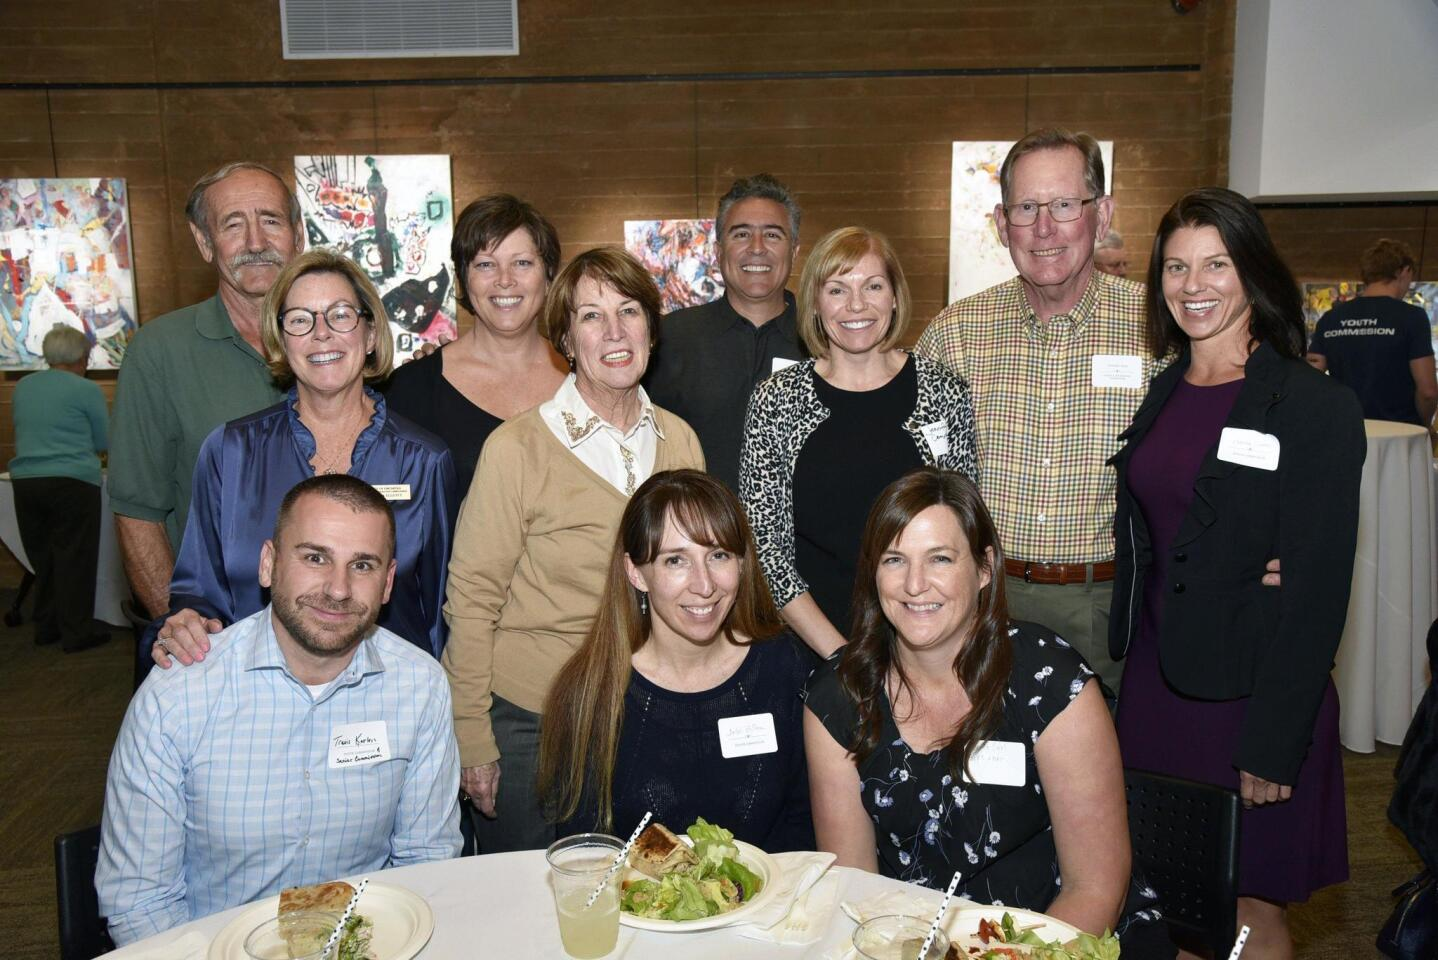 Director Jennifer Campbell (standing third from left) and Encinitas Parks and Recreation Commissioners and staff